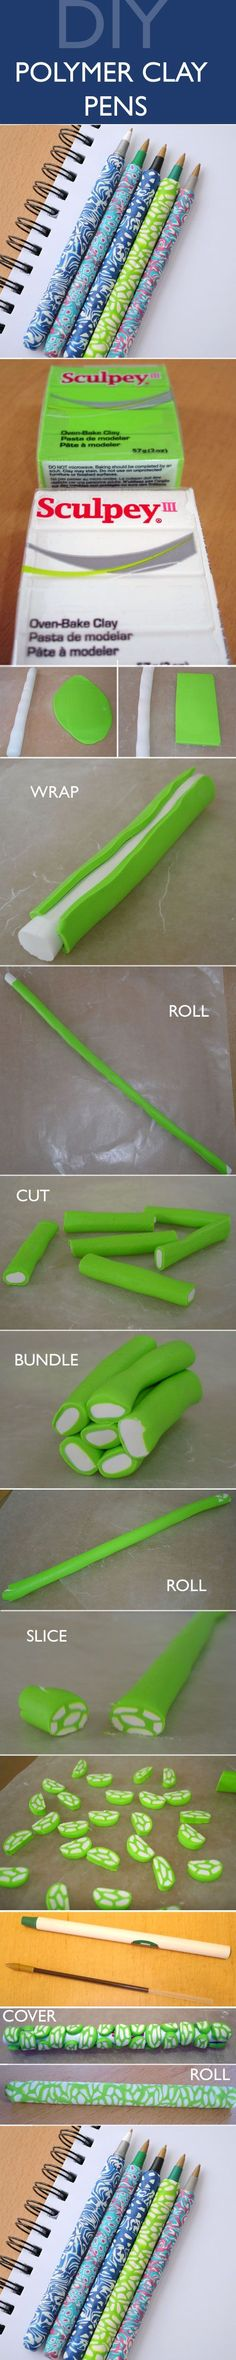 Easy tutorial to make polymer clay (FIMO) covered pens. Mom and I used to make these when I was in grade school. They were fun!